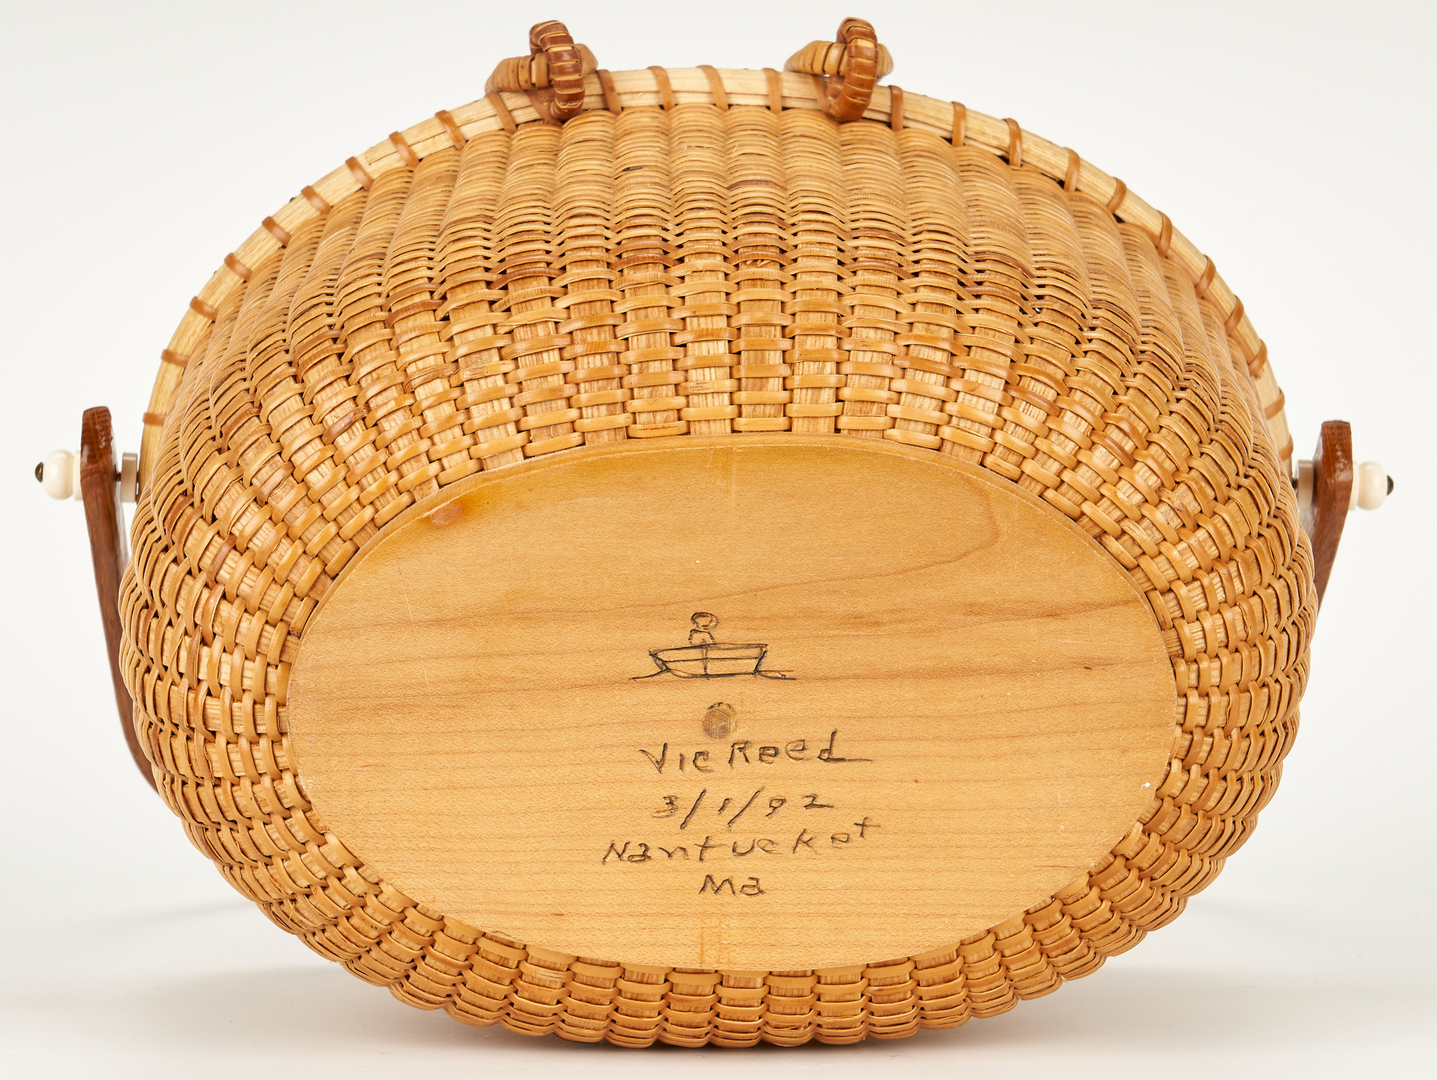 Lot 864: 5 Contemporary Signed Nantucket Baskets